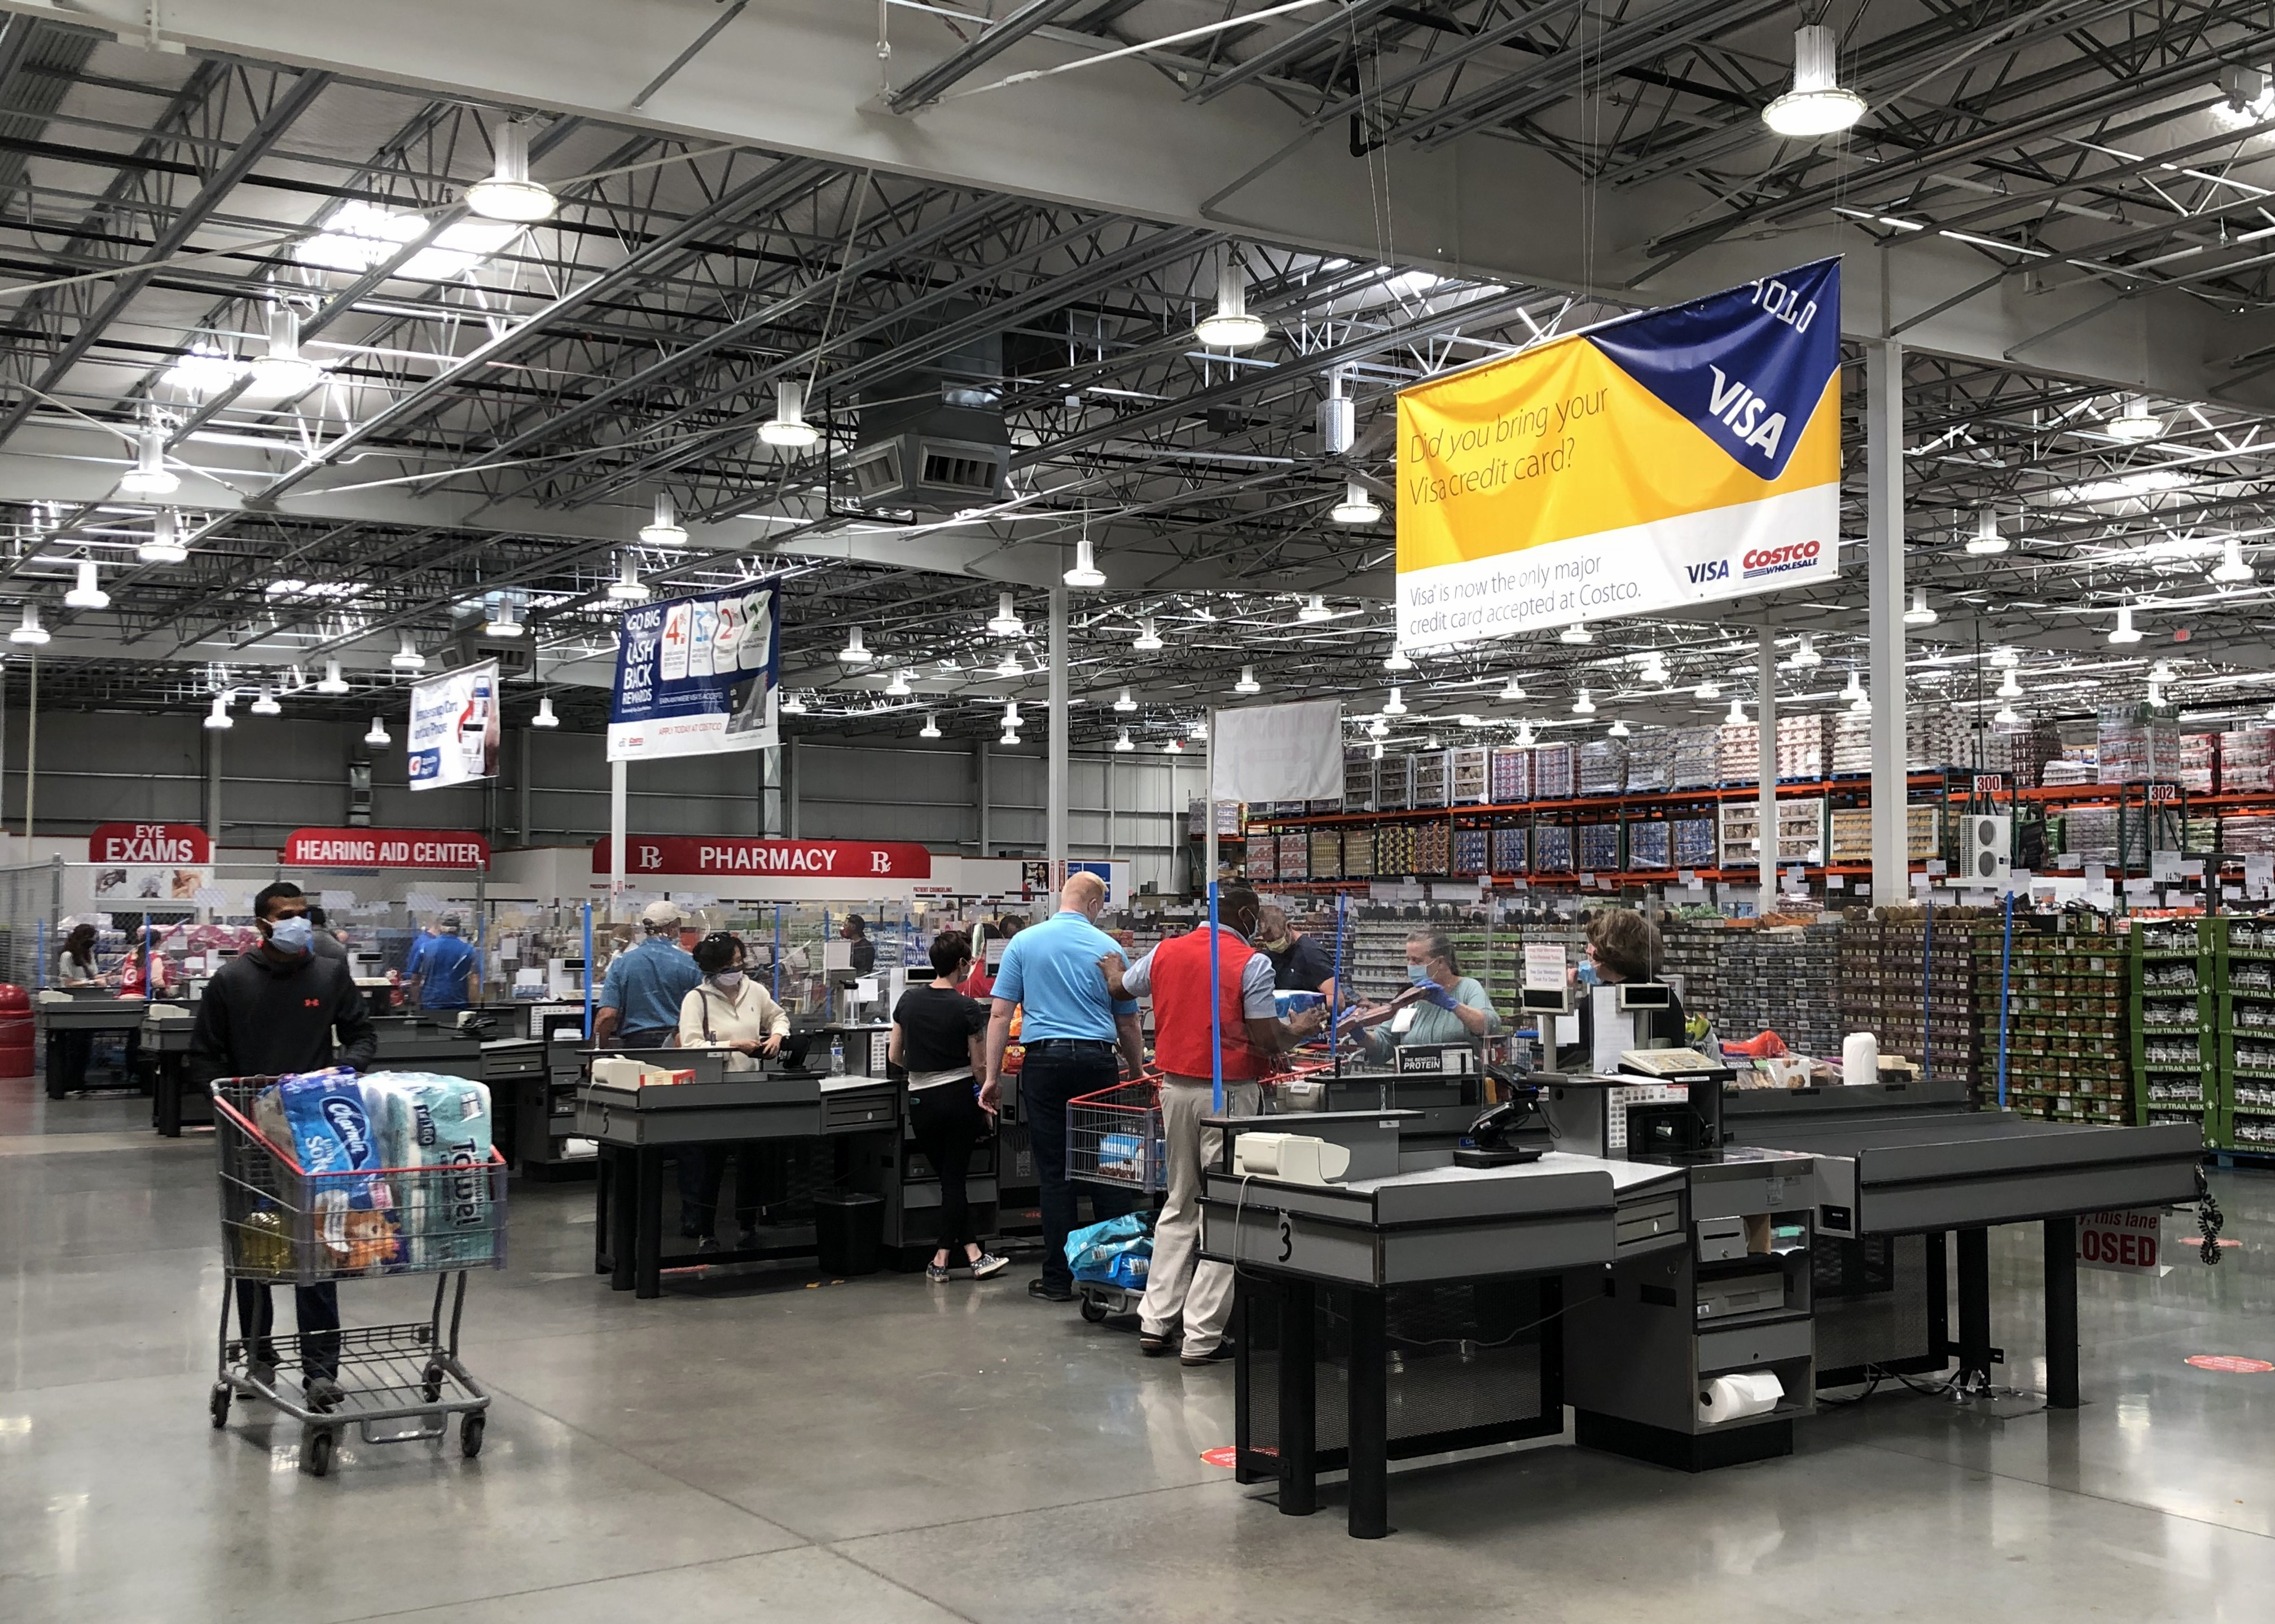 File:Costco (Plain City, Ohio) - COVID-19 countermeasures at checkout.jpg -  Wikimedia Commons